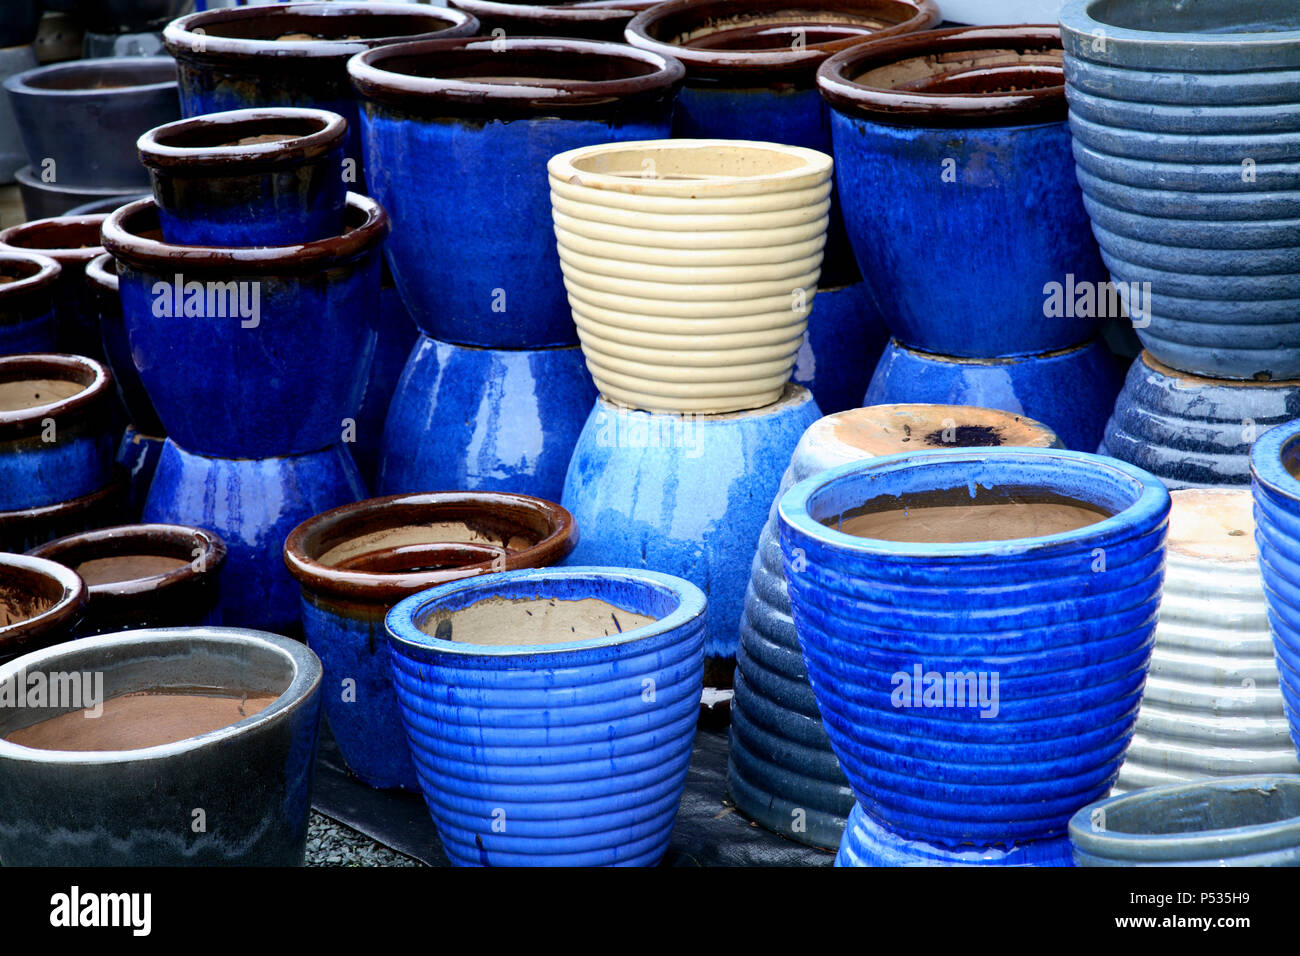 Empty blue and white flower pots stock photo 209667957 alamy empty blue and white flower pots mightylinksfo